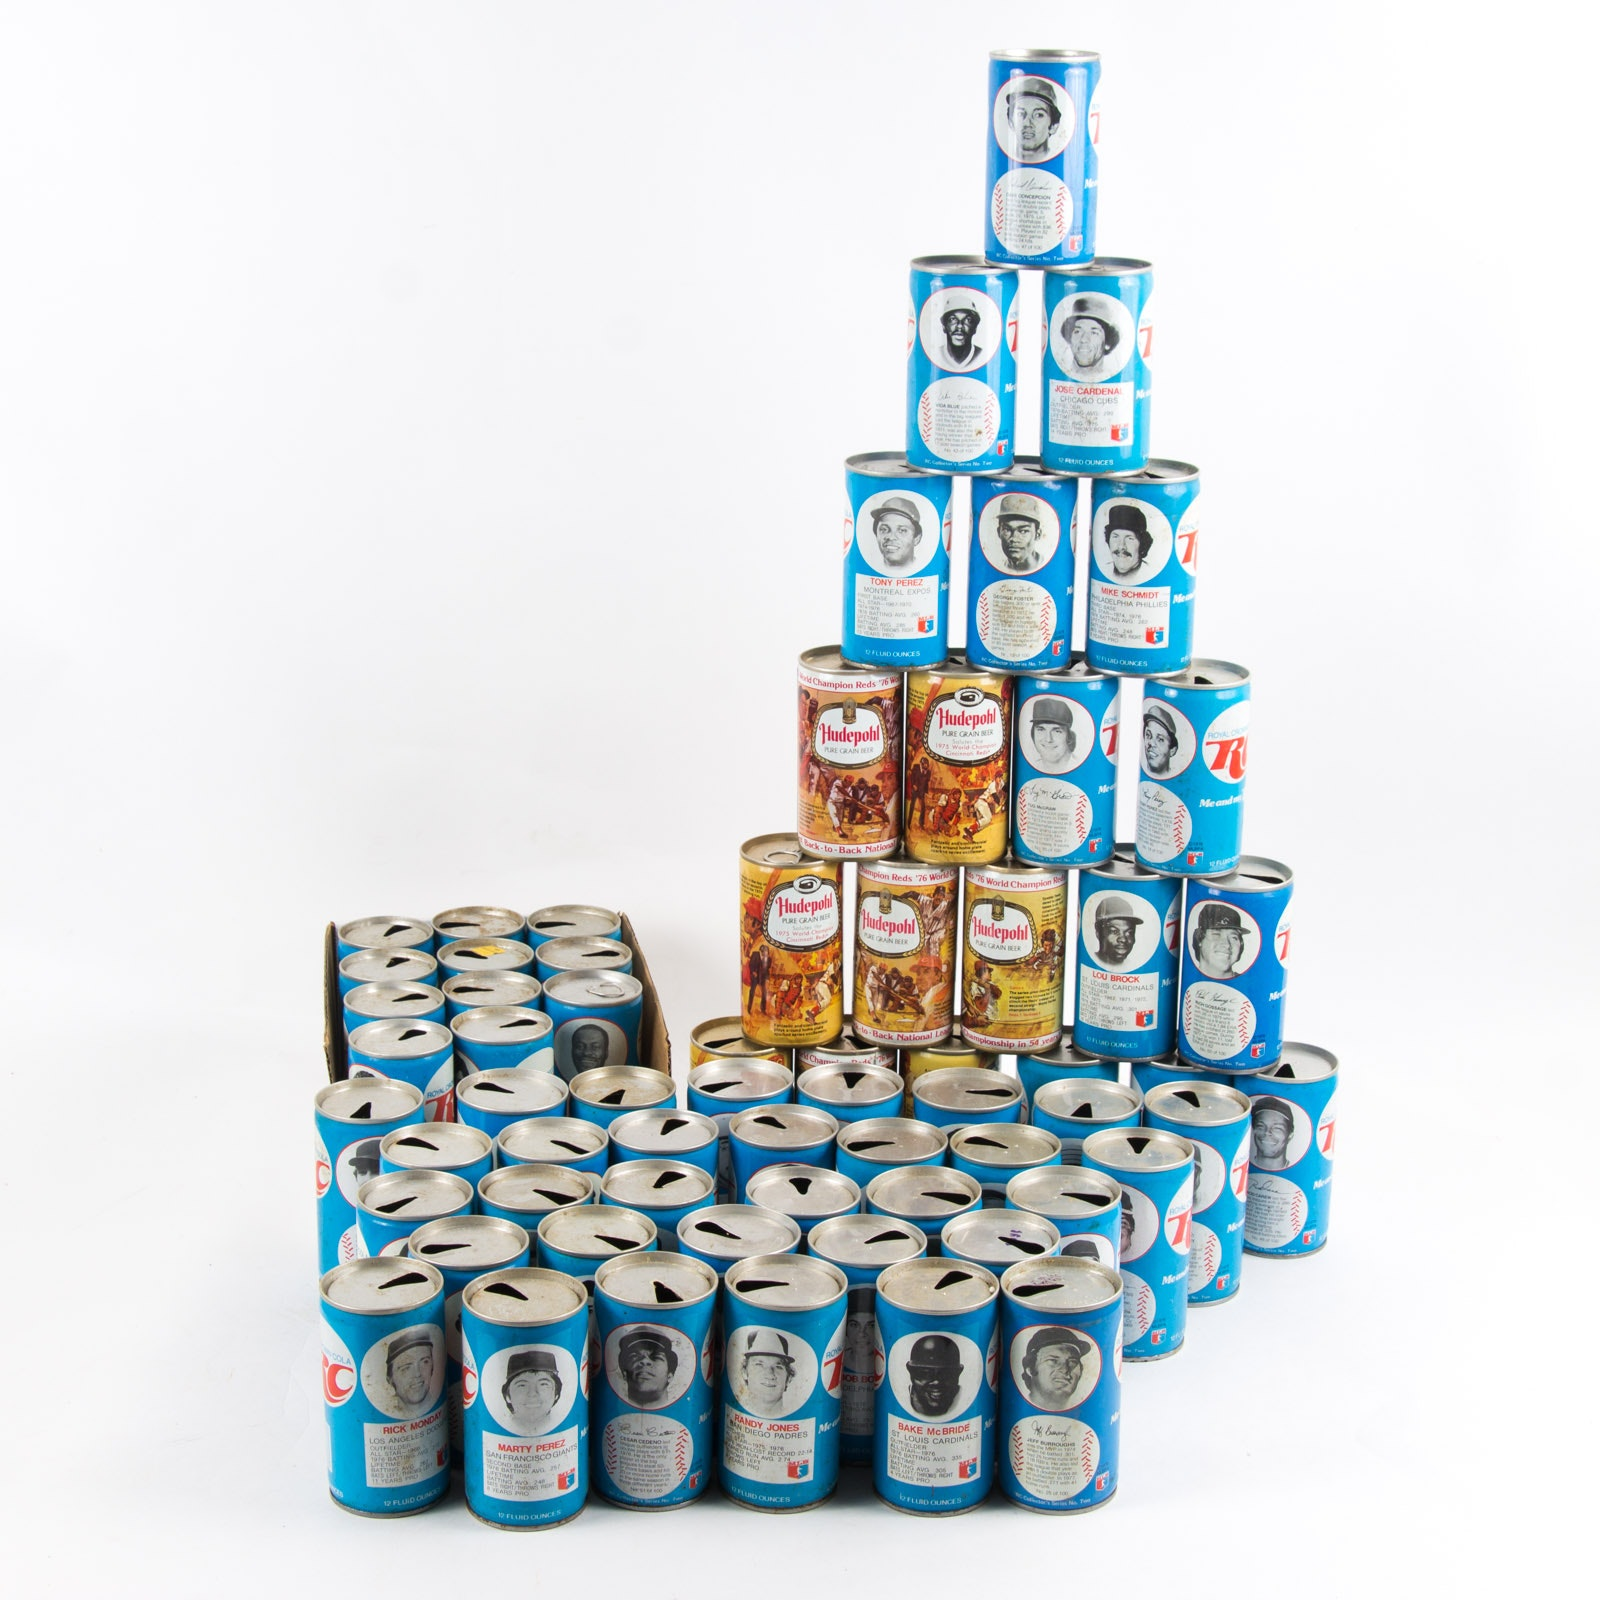 1970s Sports Themed RC Cola and Hudephohl Cans, Including Baseball, Football, and Basketball Players